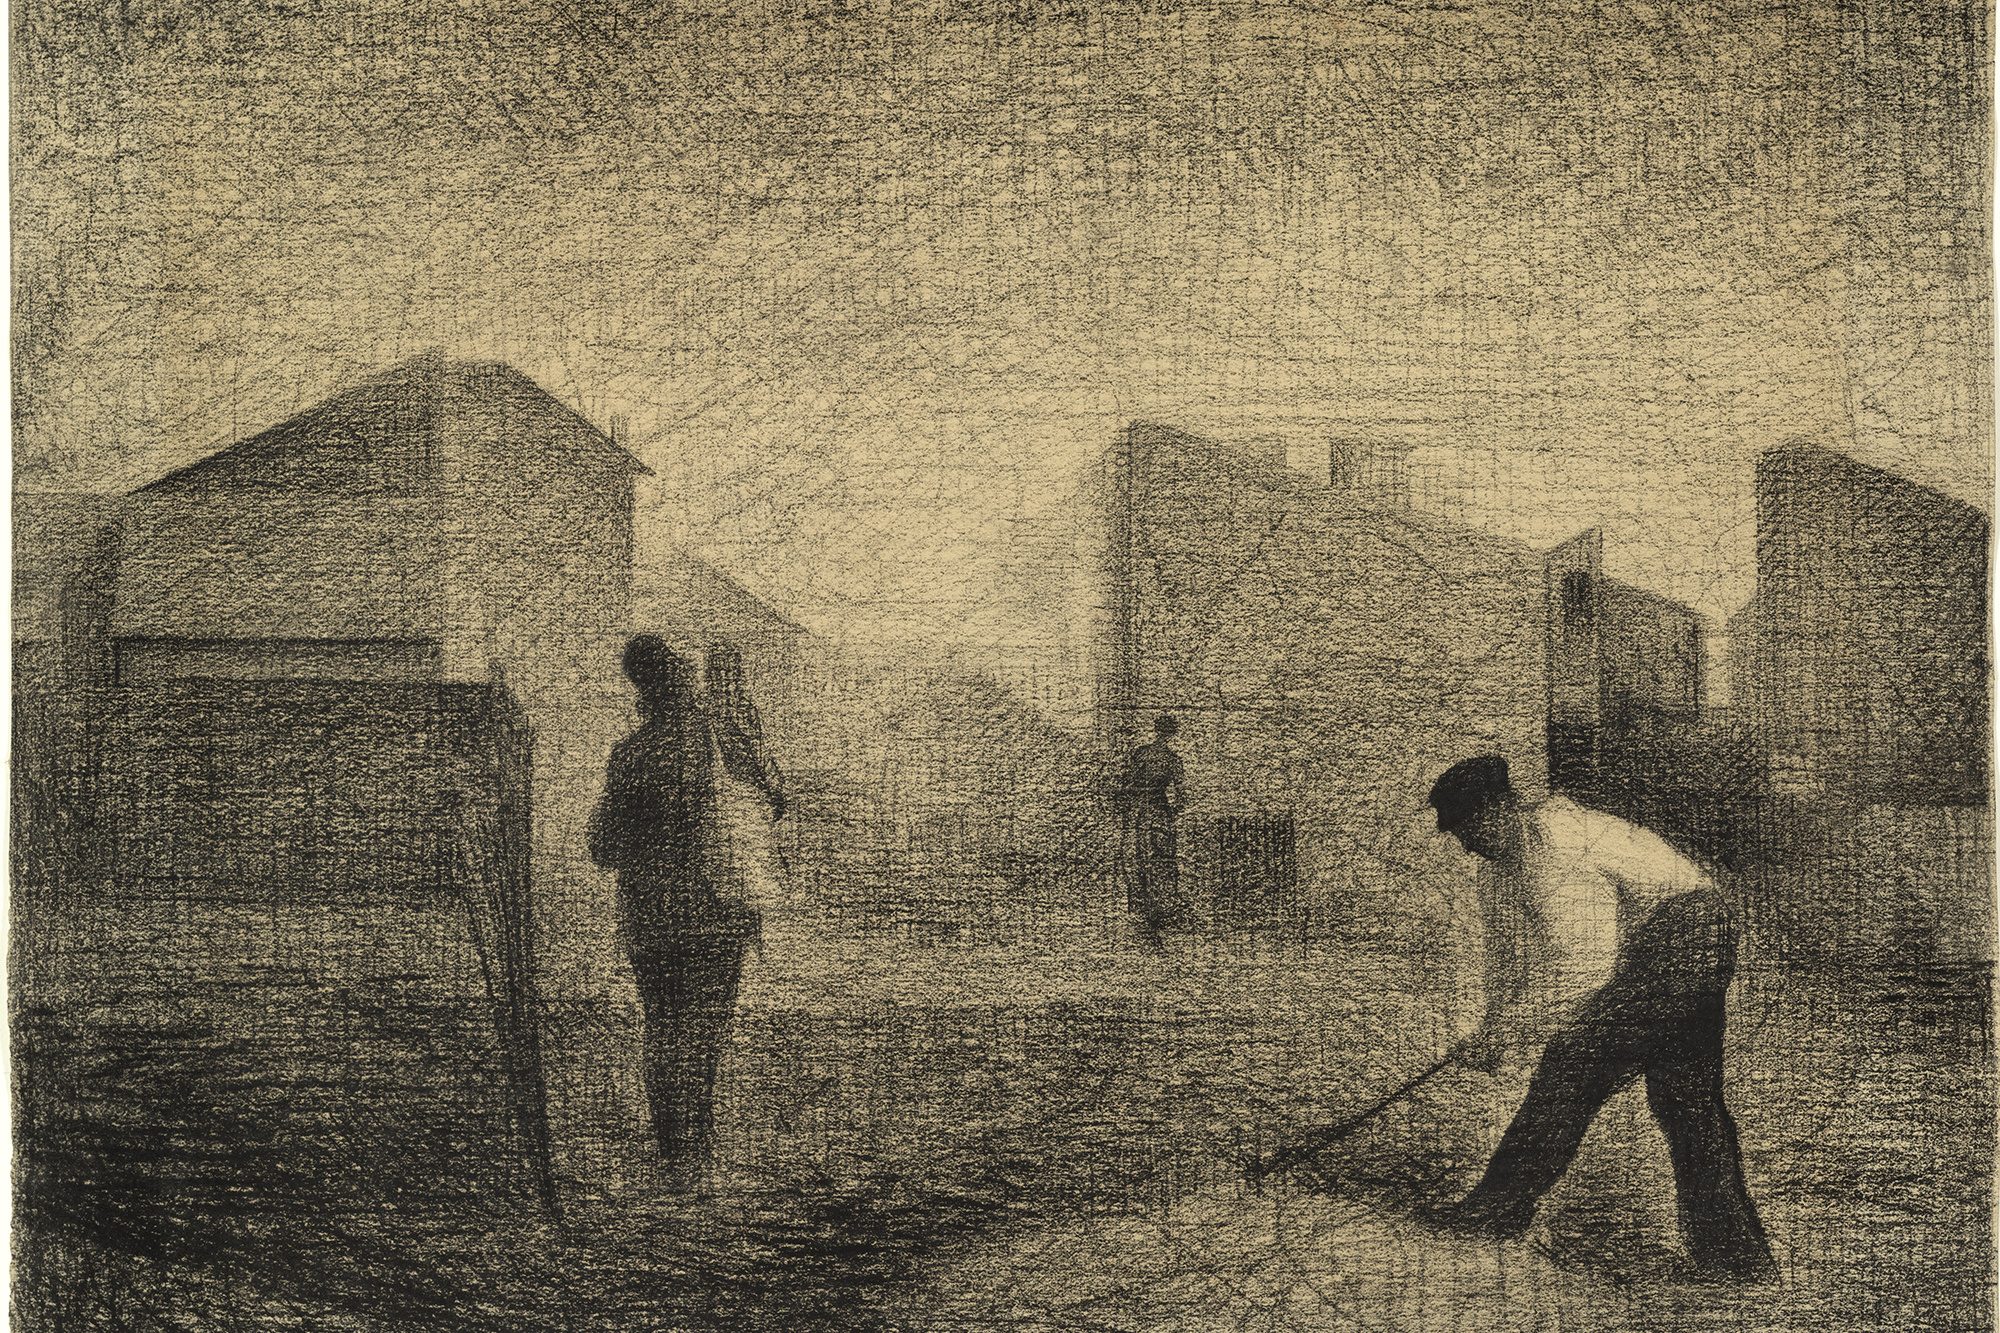 Georges-Pierre Seurat. Stone Breaker, Le Raincy. c. 1879–81. Conté crayon and graphite on paper, 12 1/8 × 14 3/4″ (30.8 × 37.5 cm). The Museum of Modern Art. Lillie P. Bliss Collection